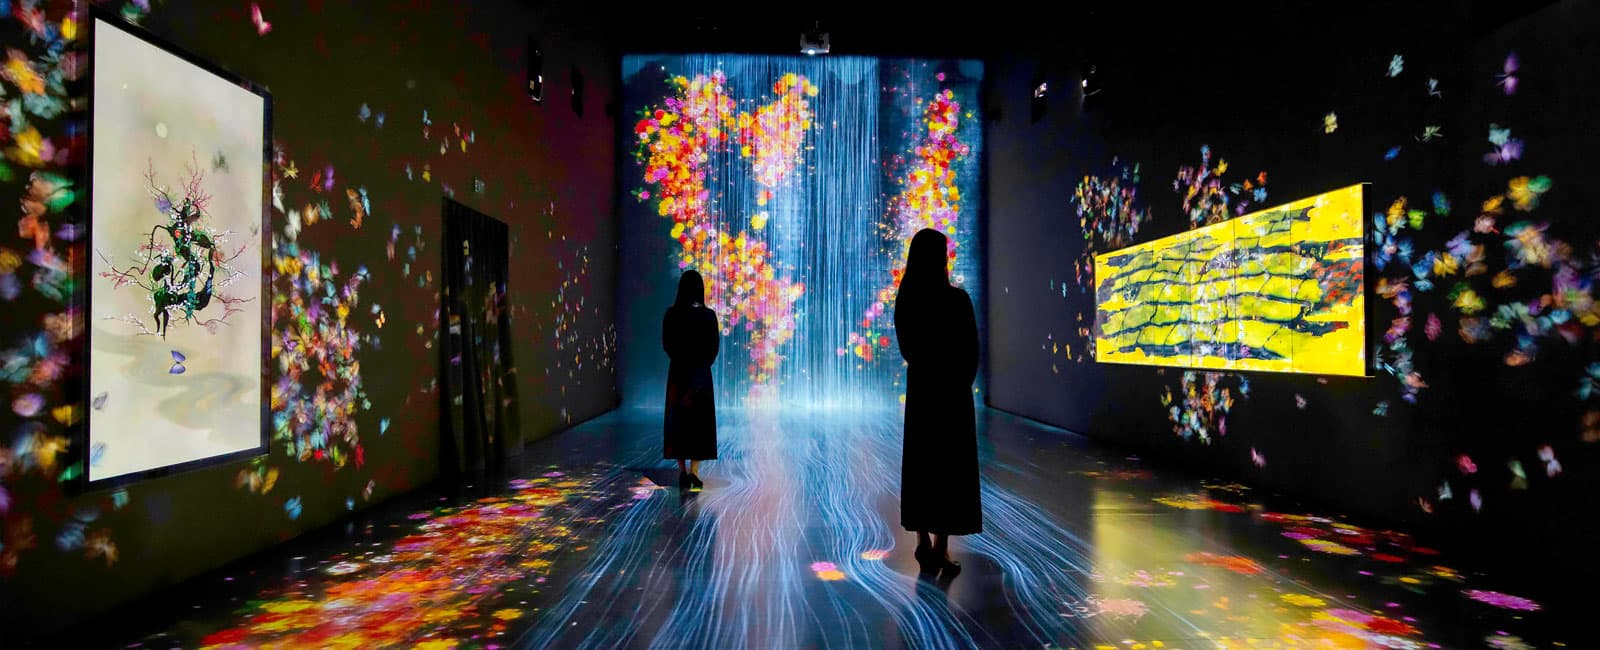 A colorful and exciting exhibition at the ArtScience Museum in Singapore